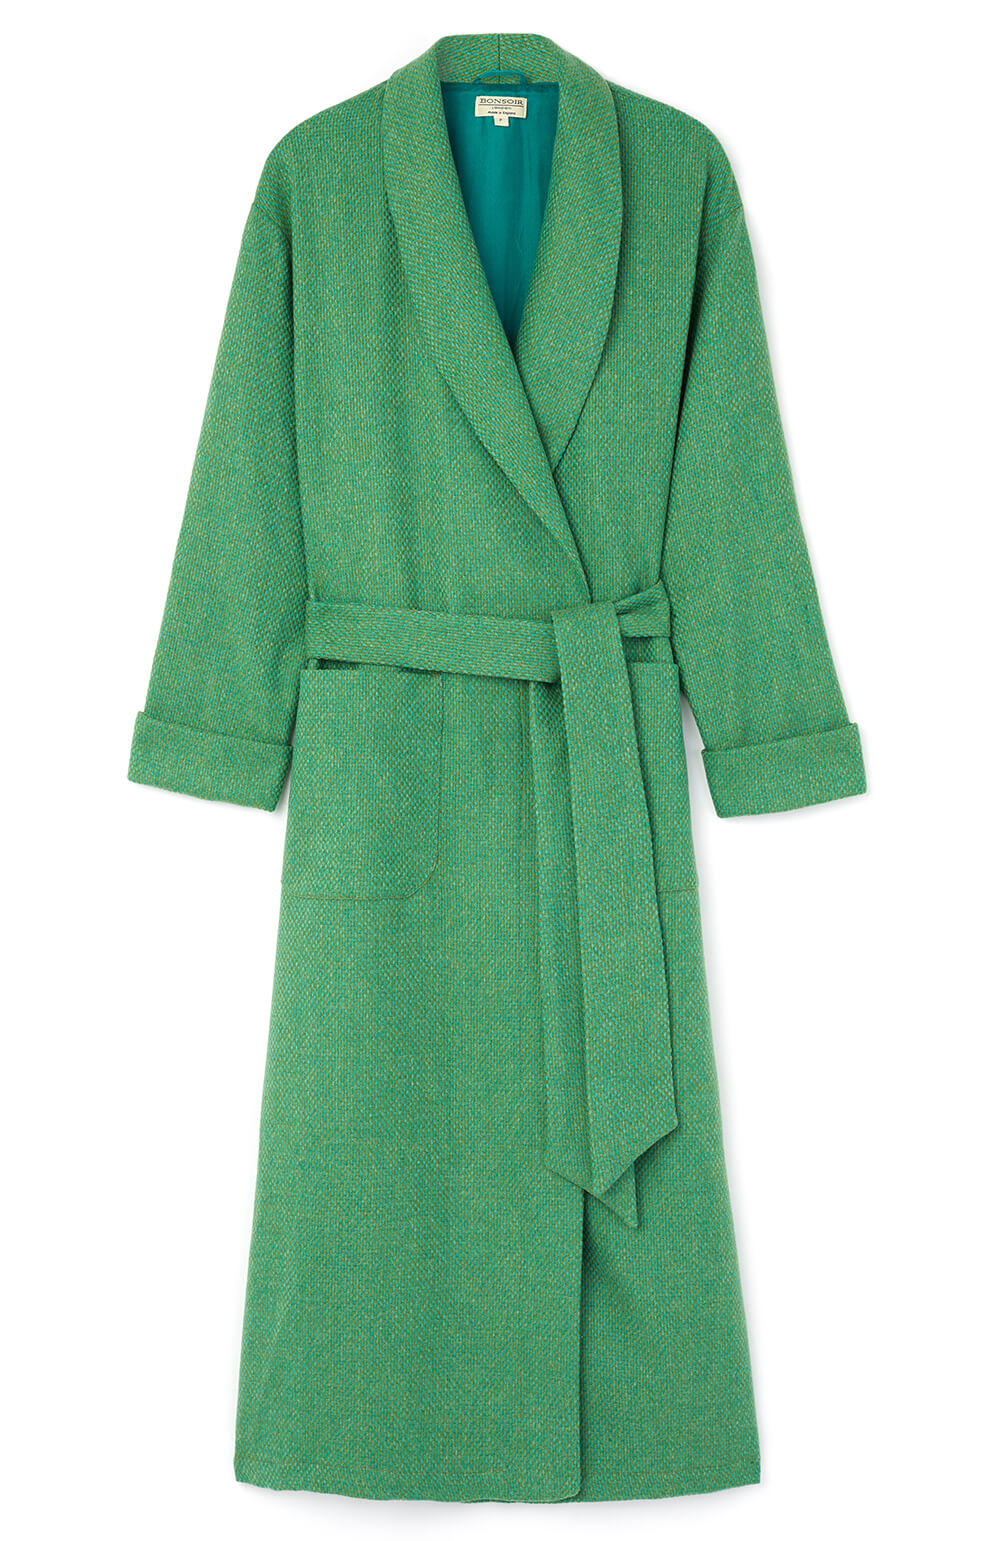 Silk Lined Green Wool Robe | Bonsoir of London